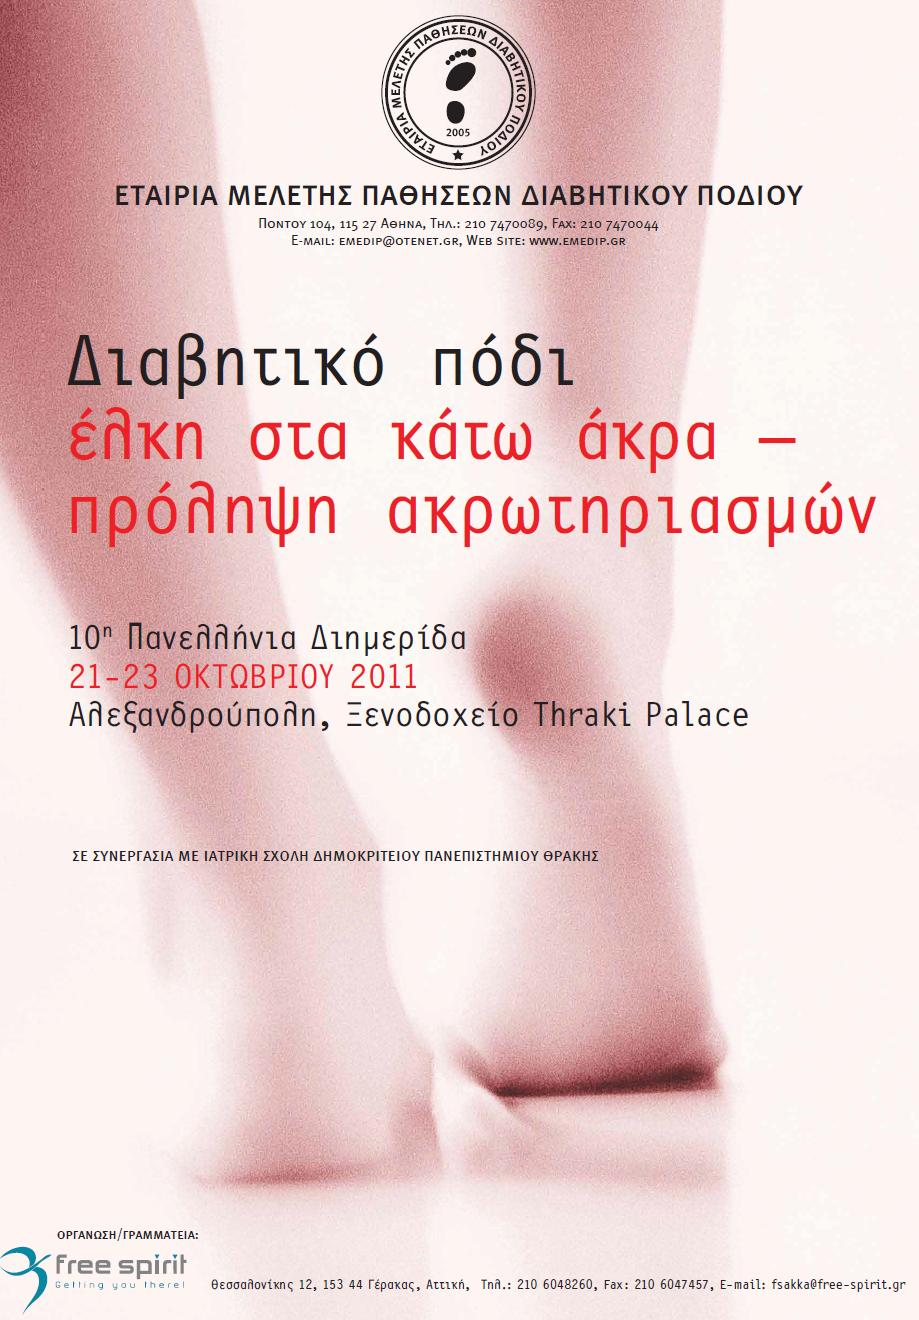 10th Panhellenic Meeting of the Hellenic Association for the Study of Diabetic Foot Disease